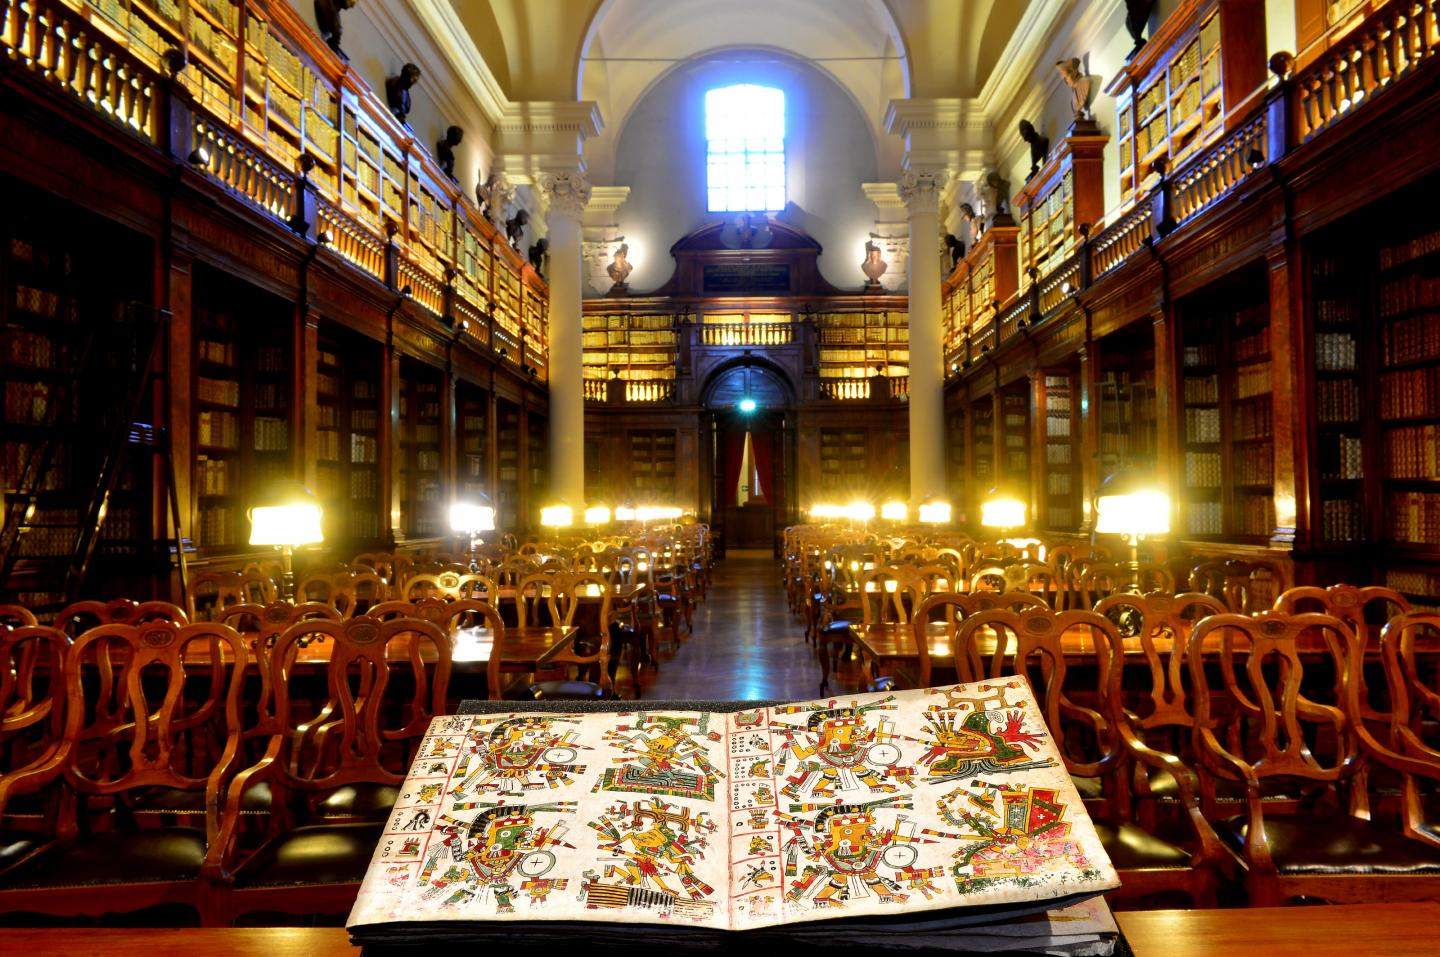 The Codex Cospi at the Bologna University Library